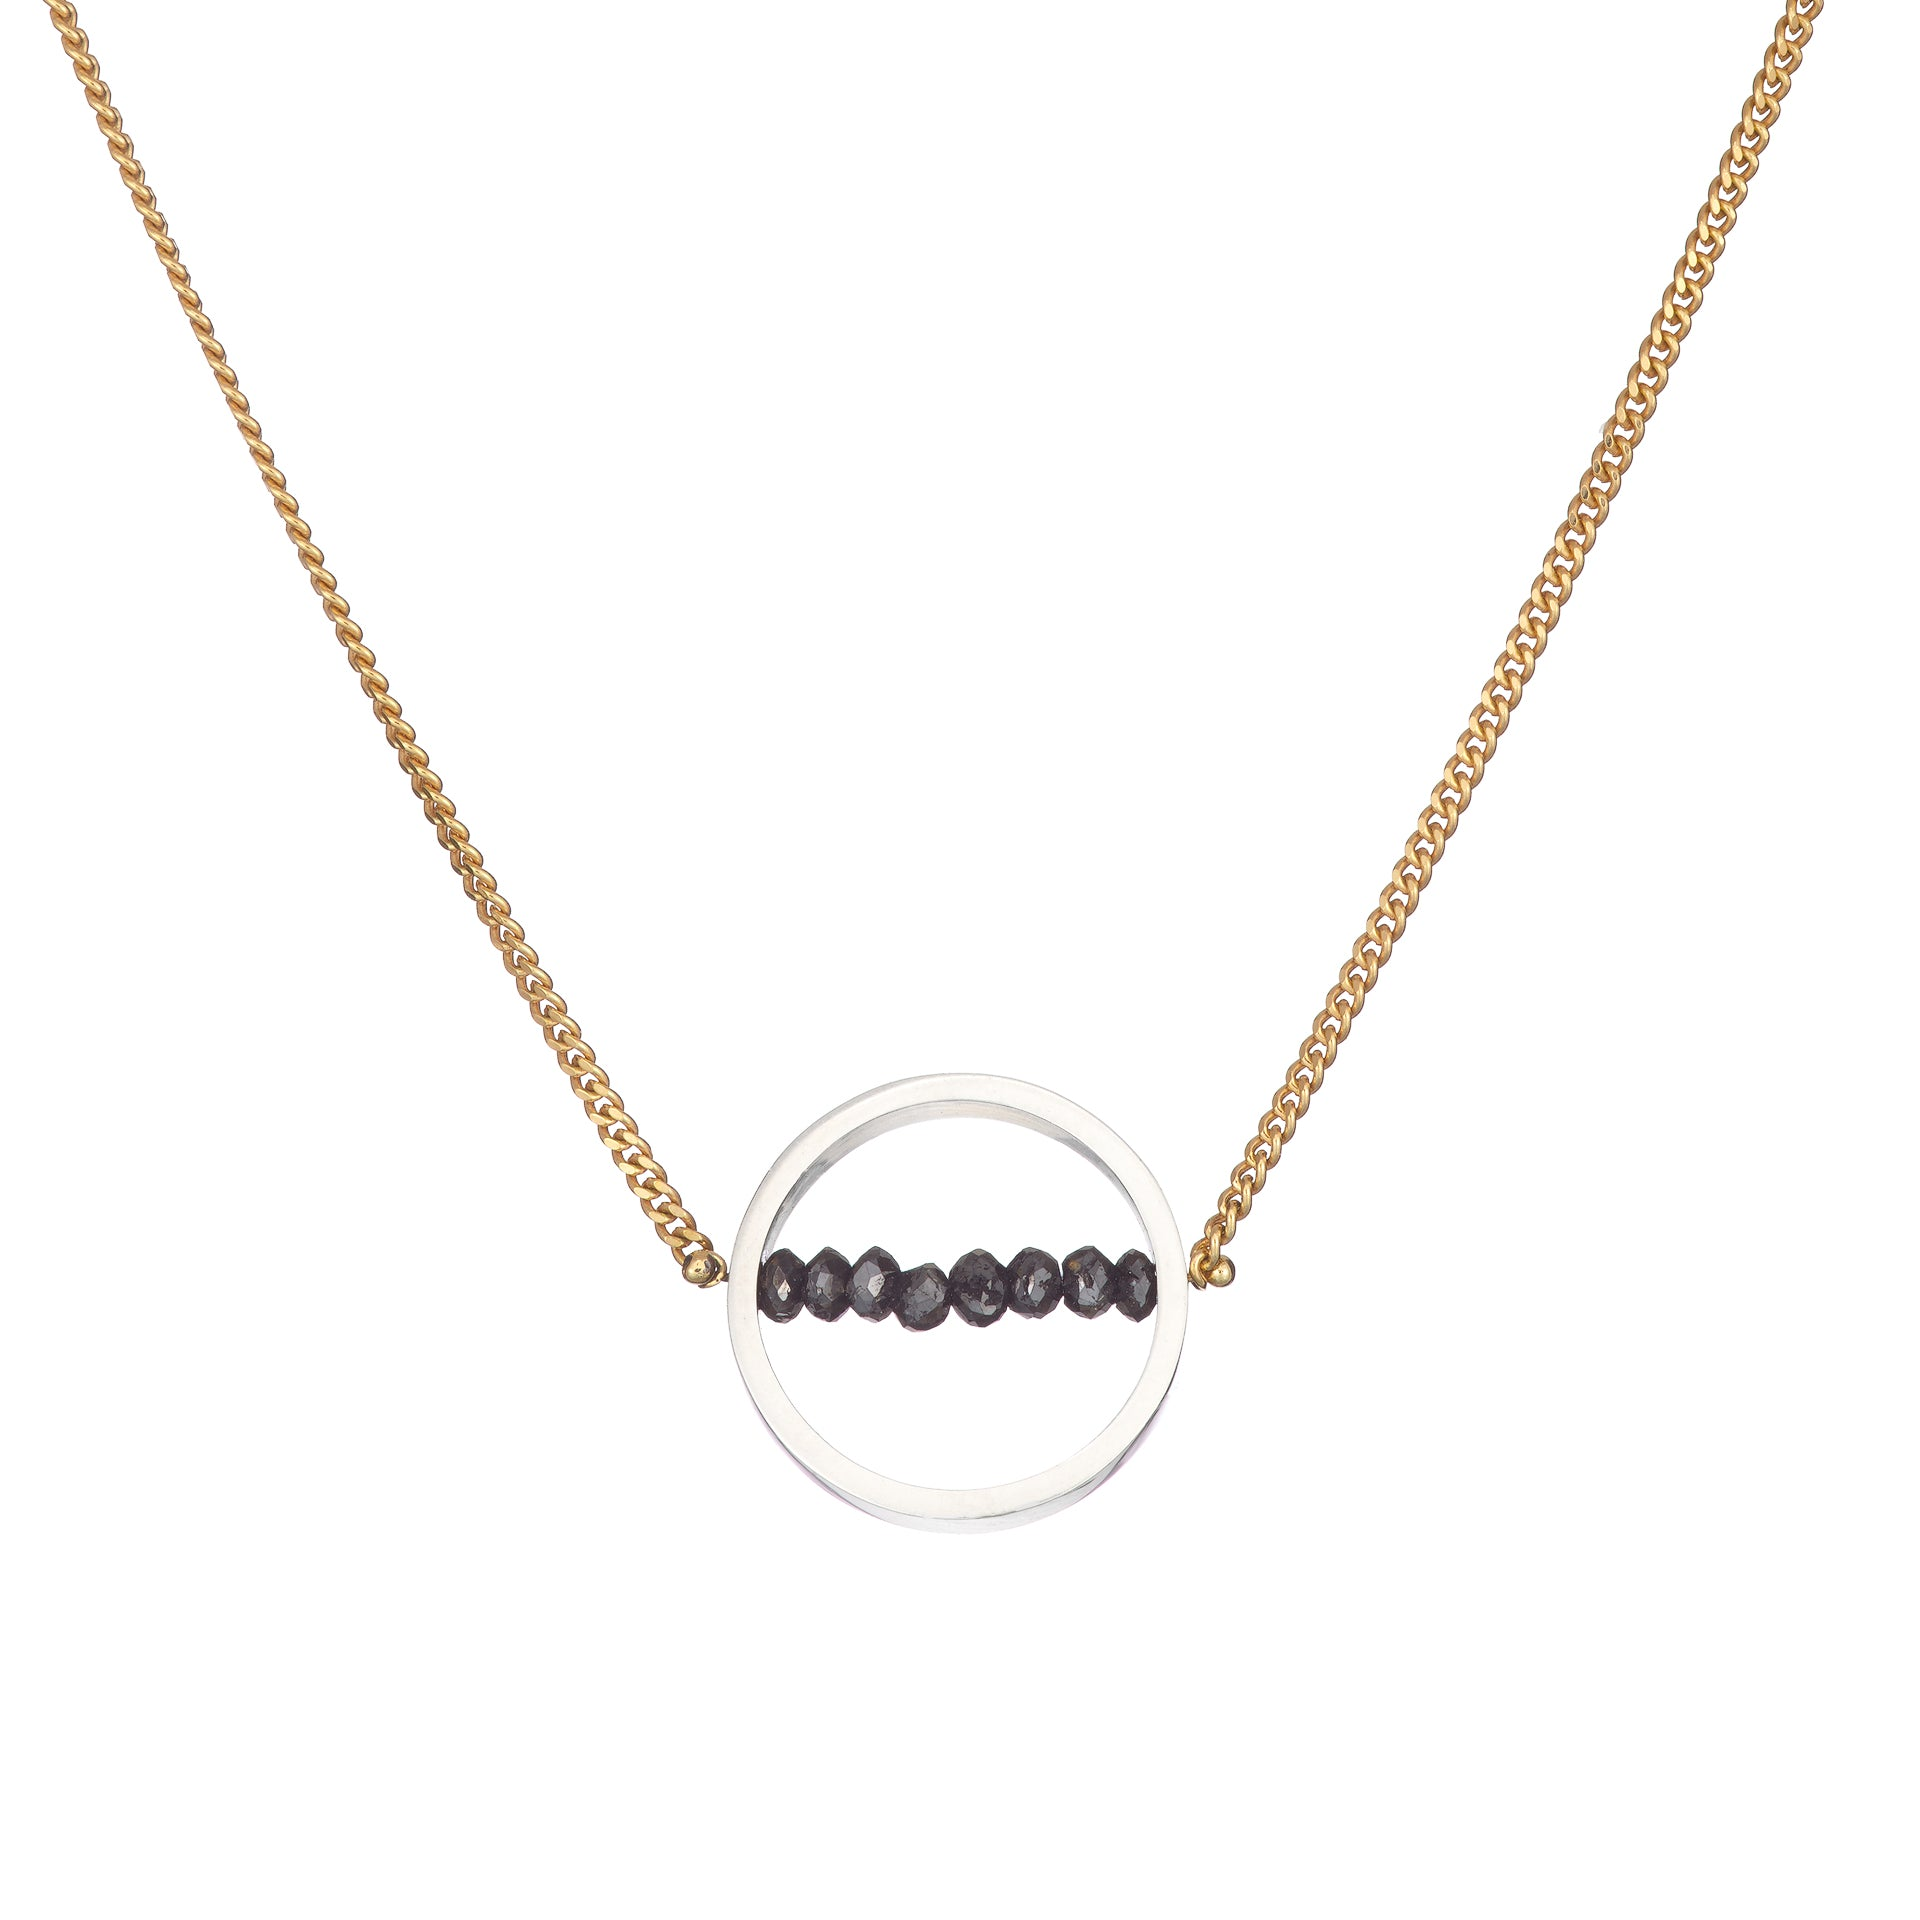 18k yellow gold black diamond silver hoop pendant necklace